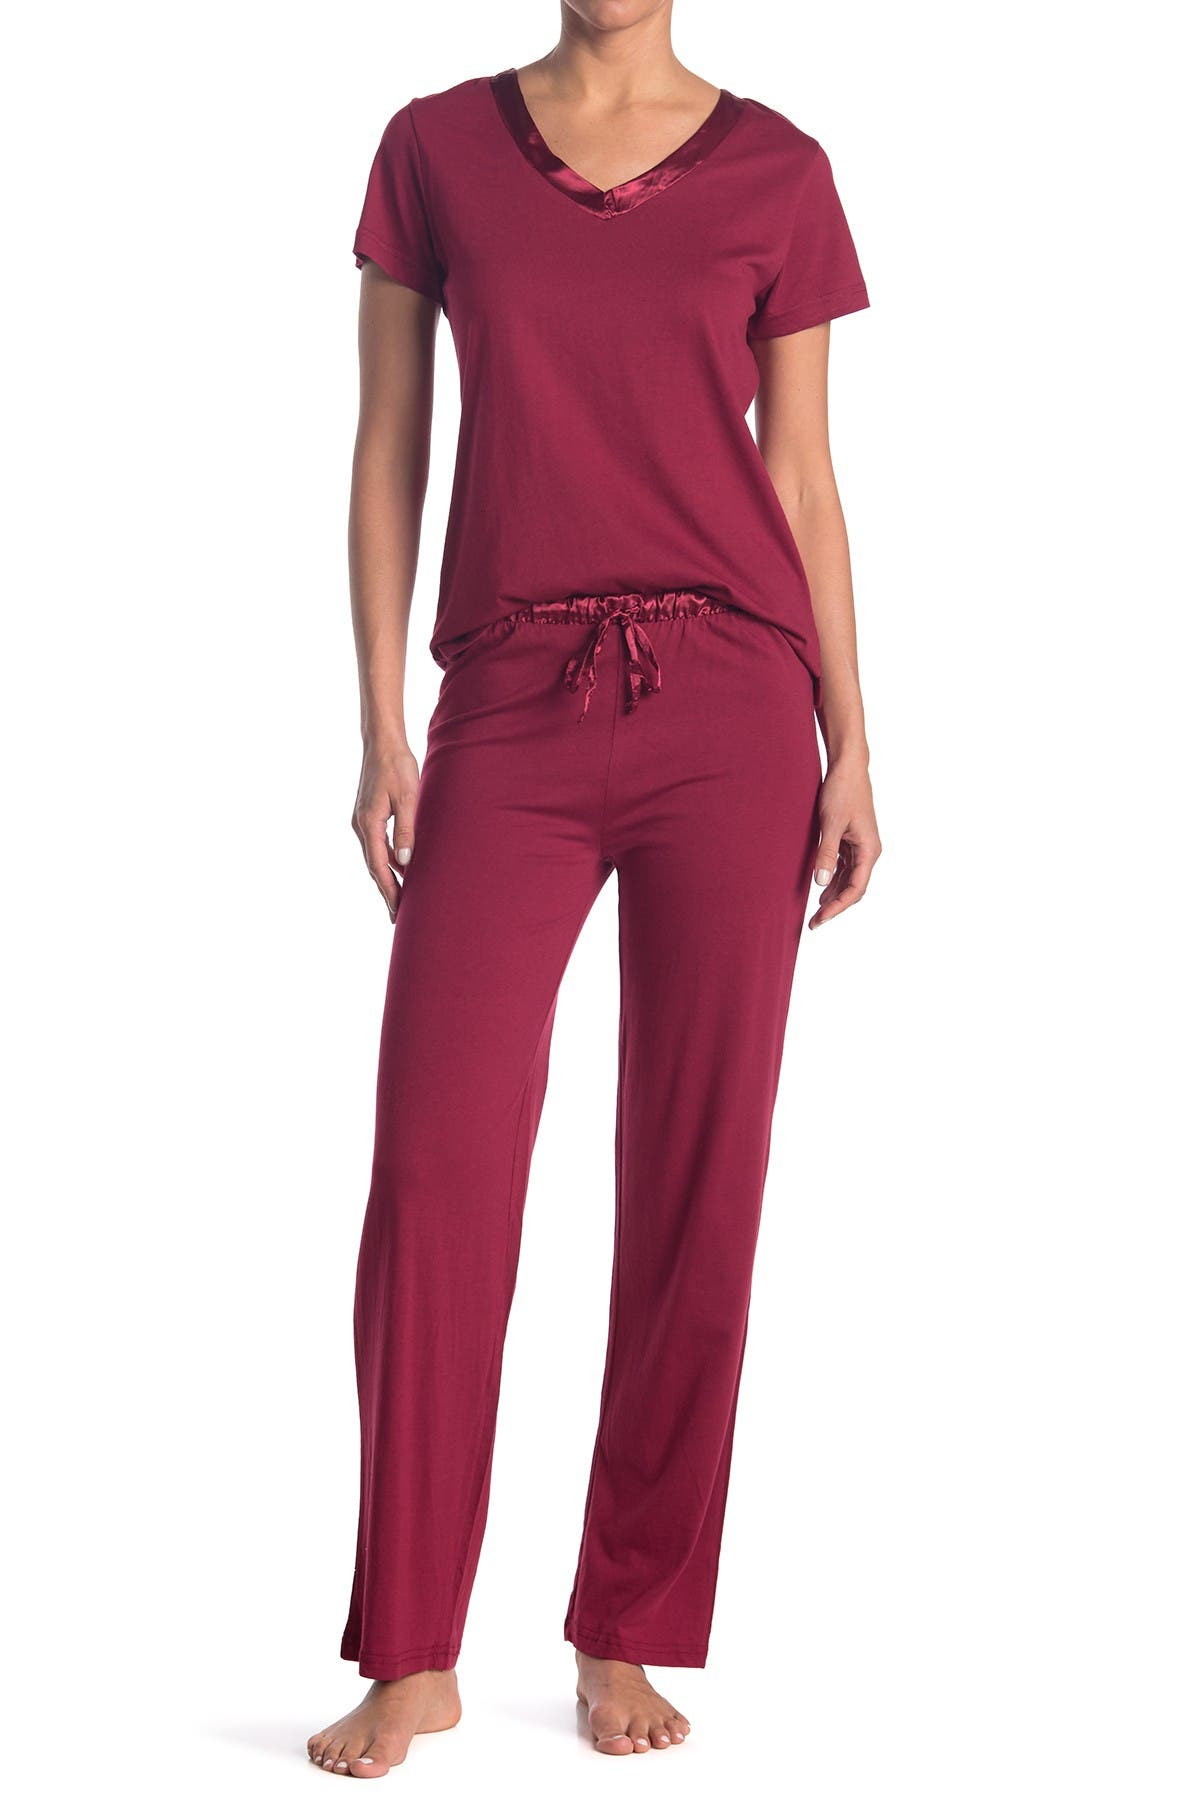 Image of Blis Satin Trim 2-Piece Pajama Set